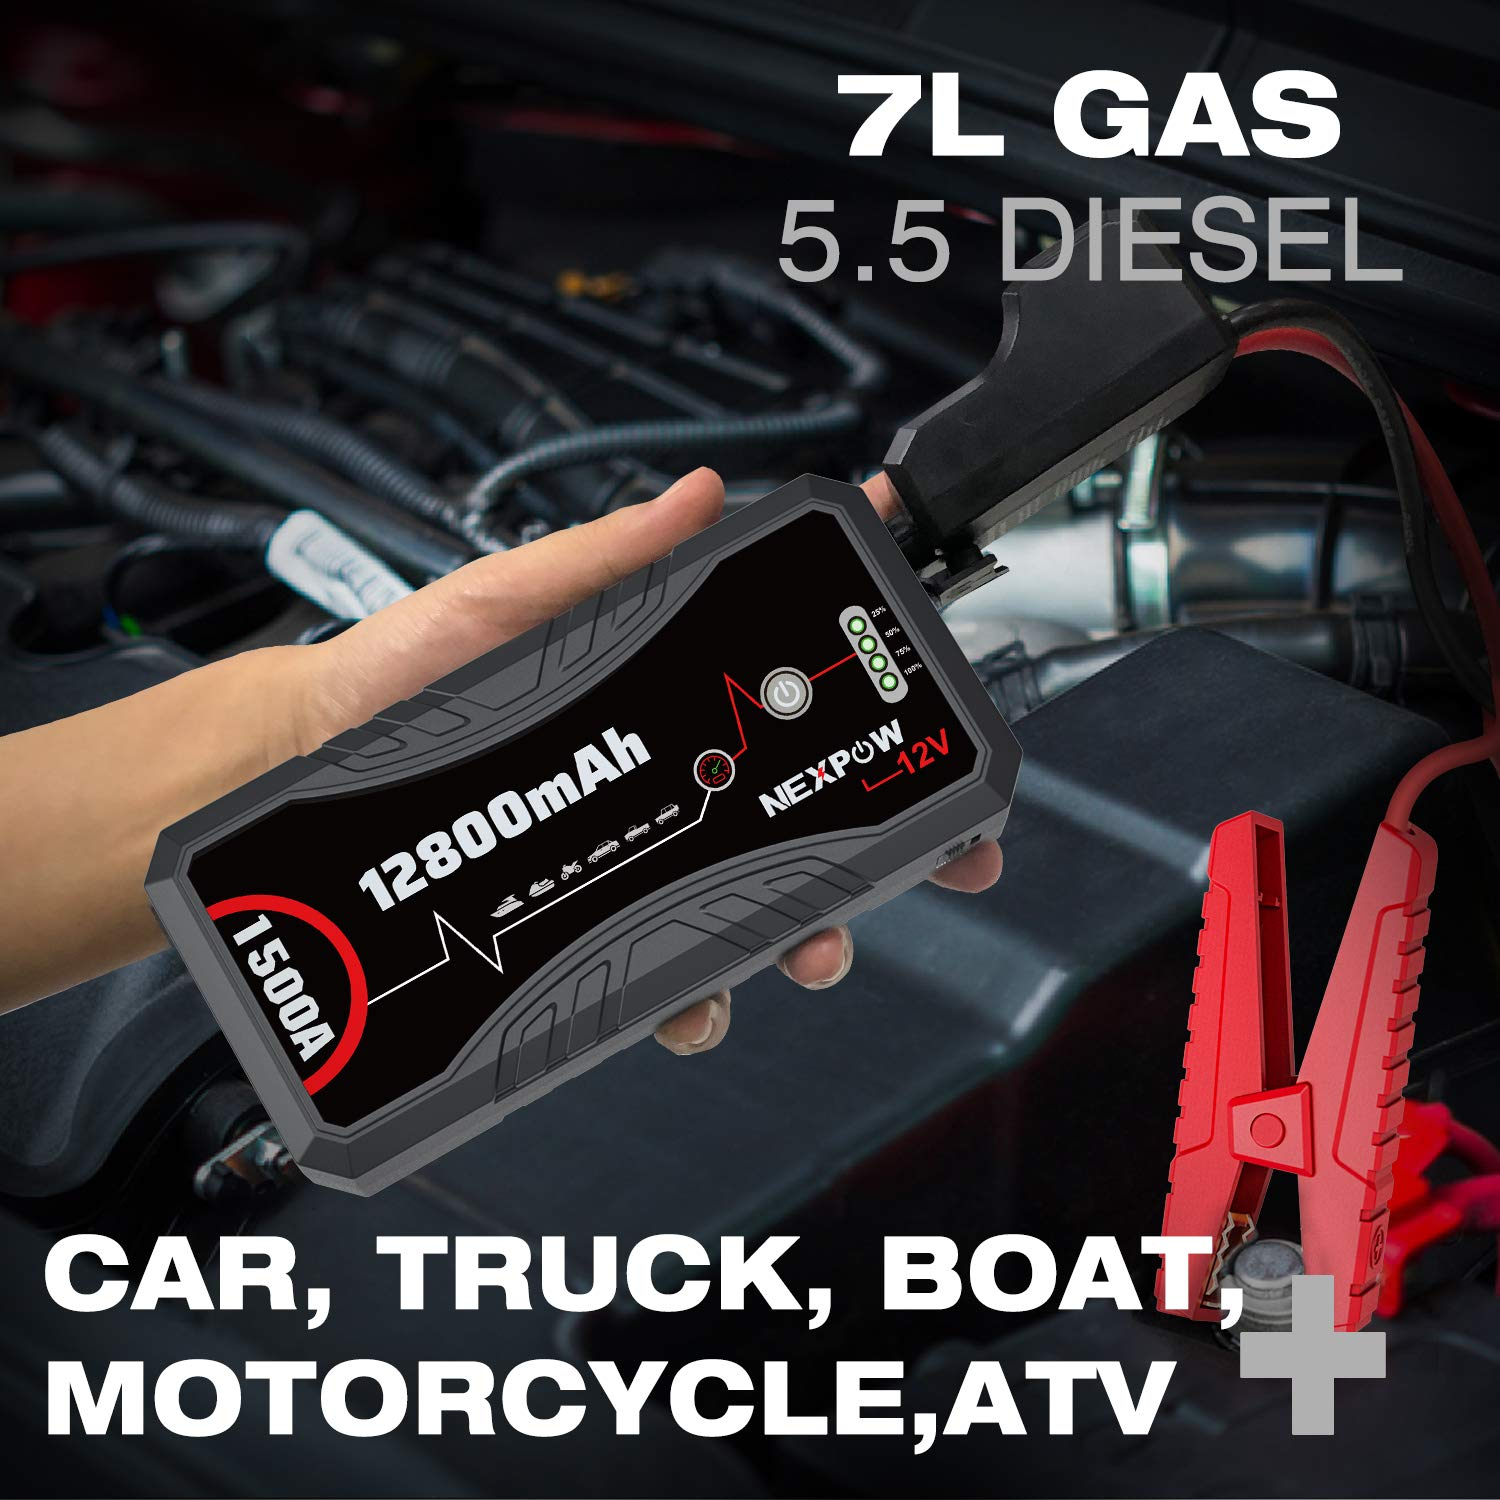 1500A Peak 12800mAh 12V Car Auto Jump Starter Power Pack with USB Quick Charge 3.0 Up to 7L Gas or 5.5L Diesel Engine NEXPOW Car Battery Starter Q10S